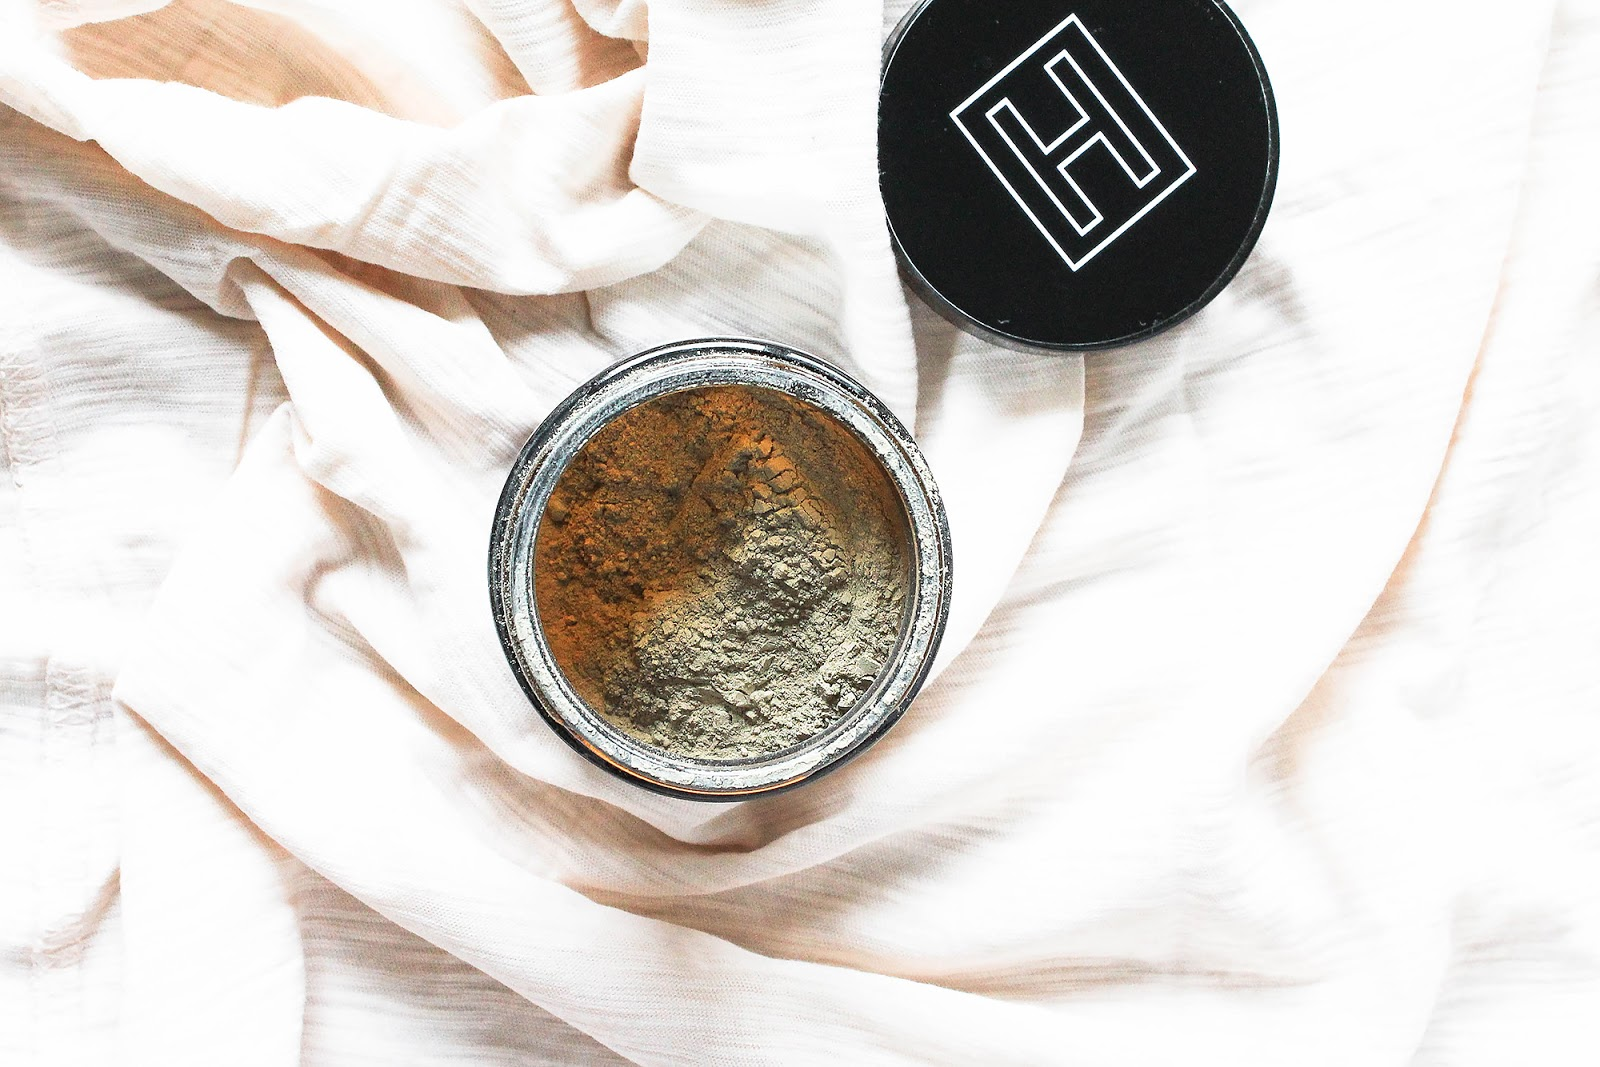 H IS FOR LOVE Propolis Regenerative Face Mask. Purifying, stimulating, brightening mask. So Natural Beauty. Vegan, organic.